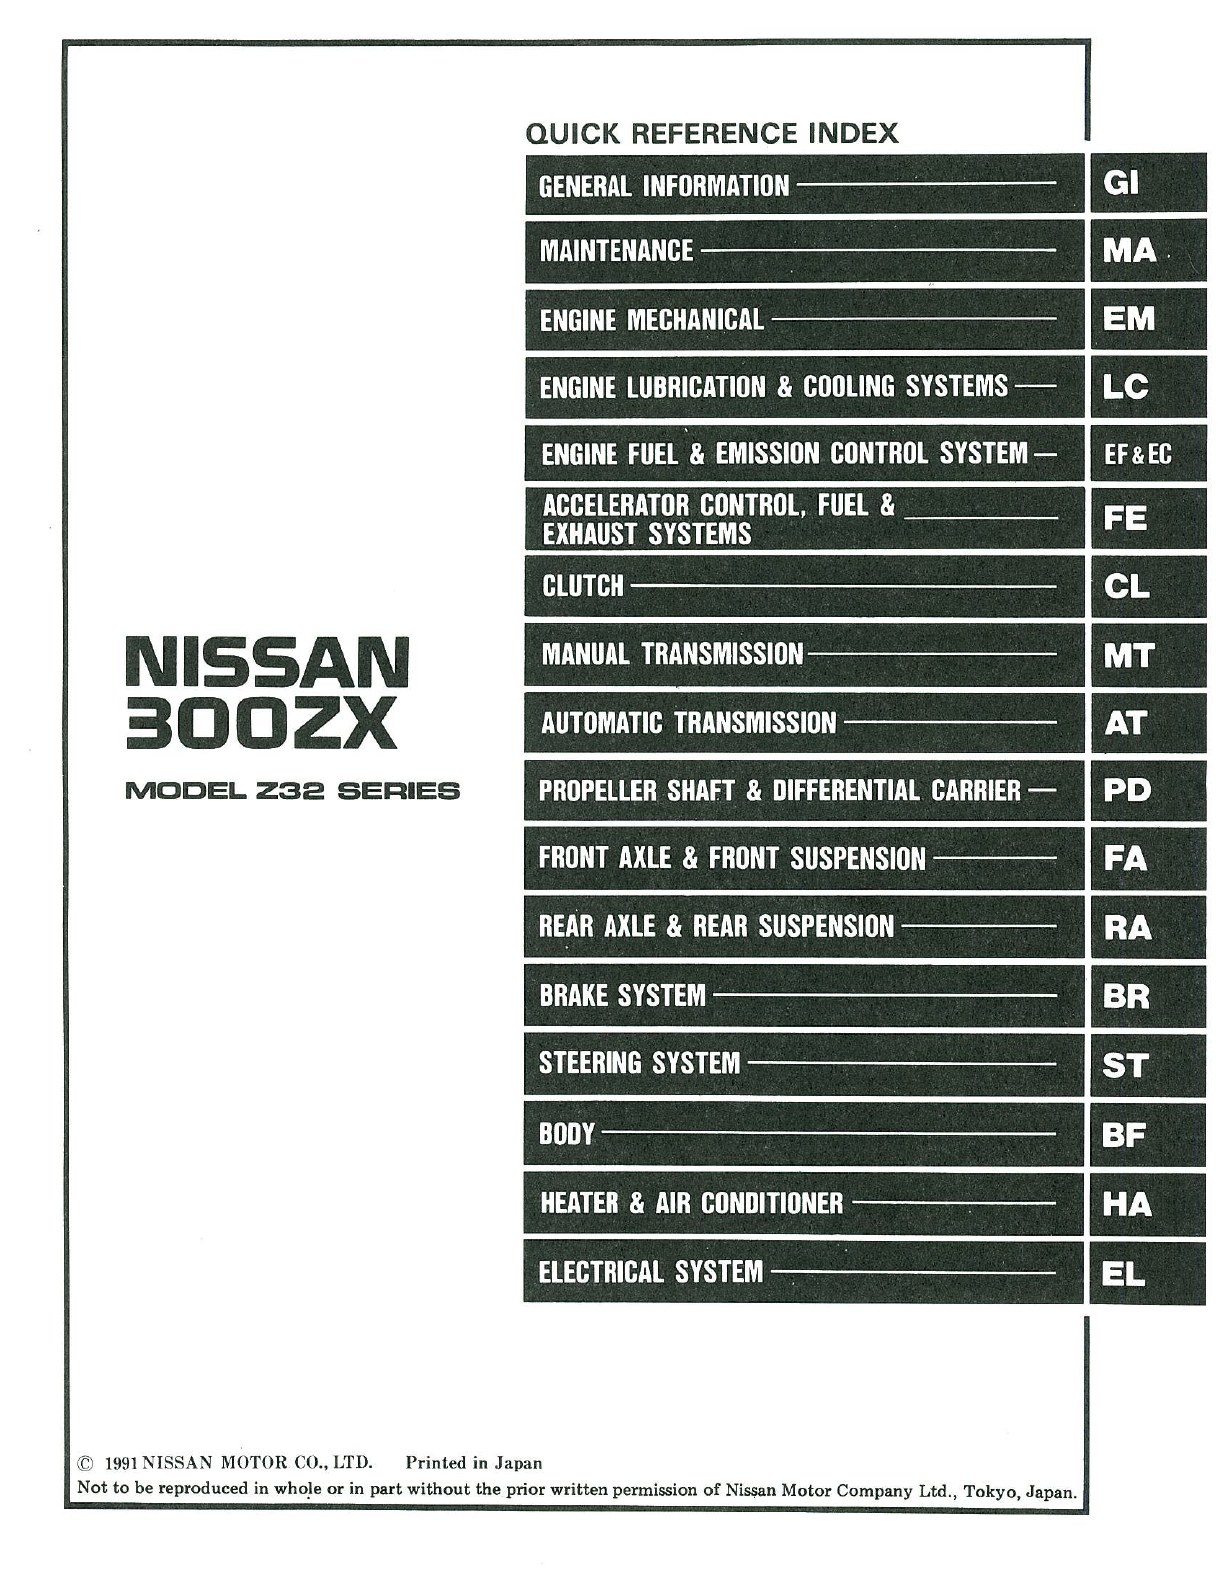 See our other Nissan 300 ZX Manuals: Nissan 300 ZX 1991 Owners Manual · Nissan  300ZX 1993 Workshop Manual